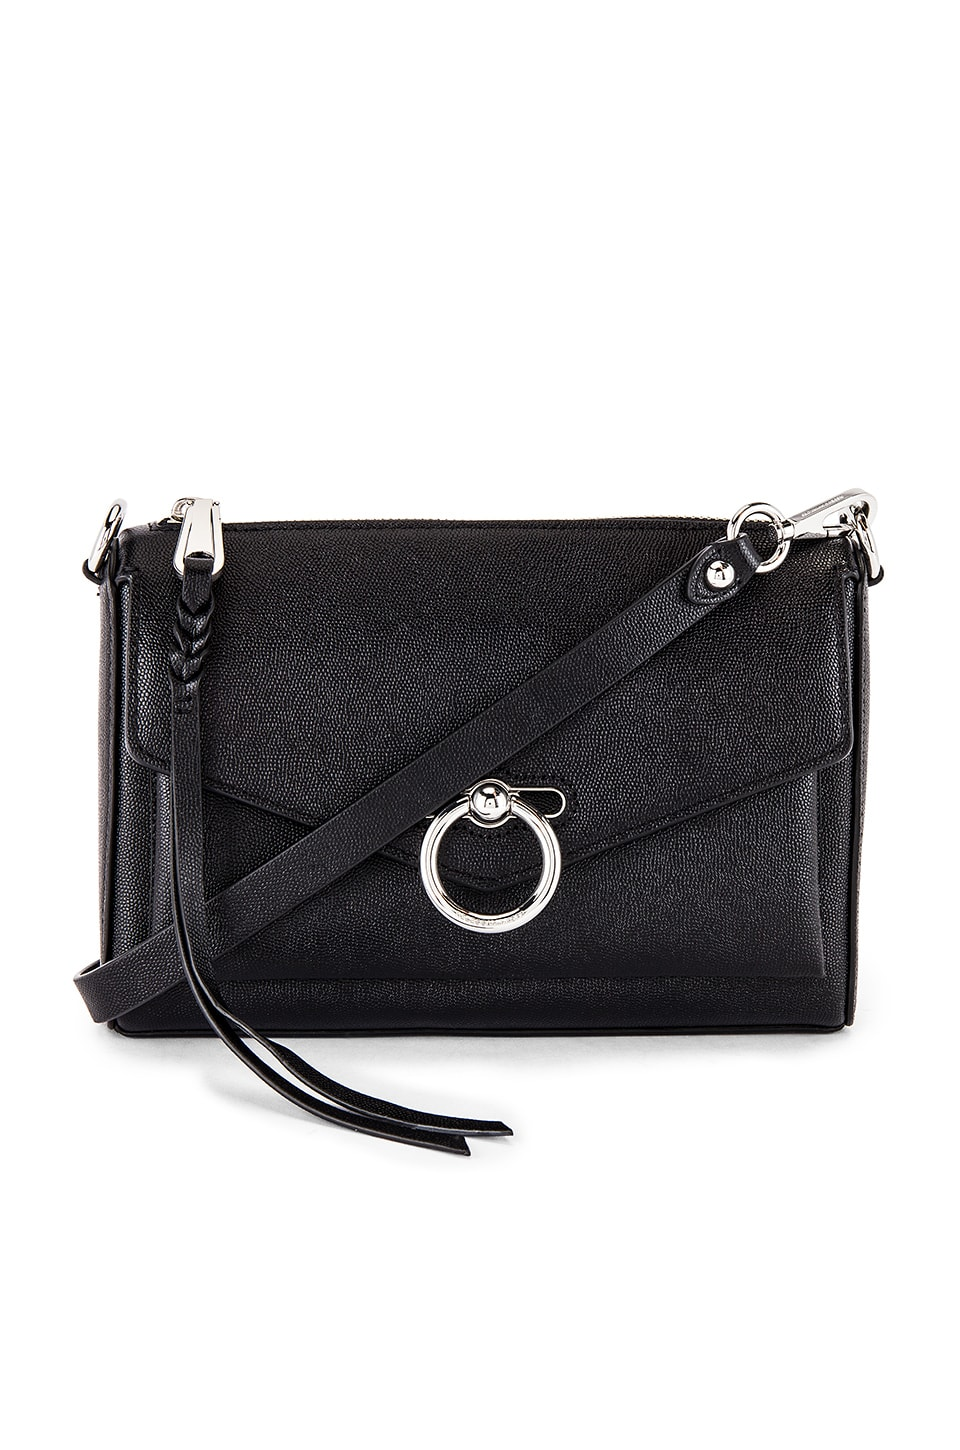 Rebecca Minkoff Jean Mac Bag in Black